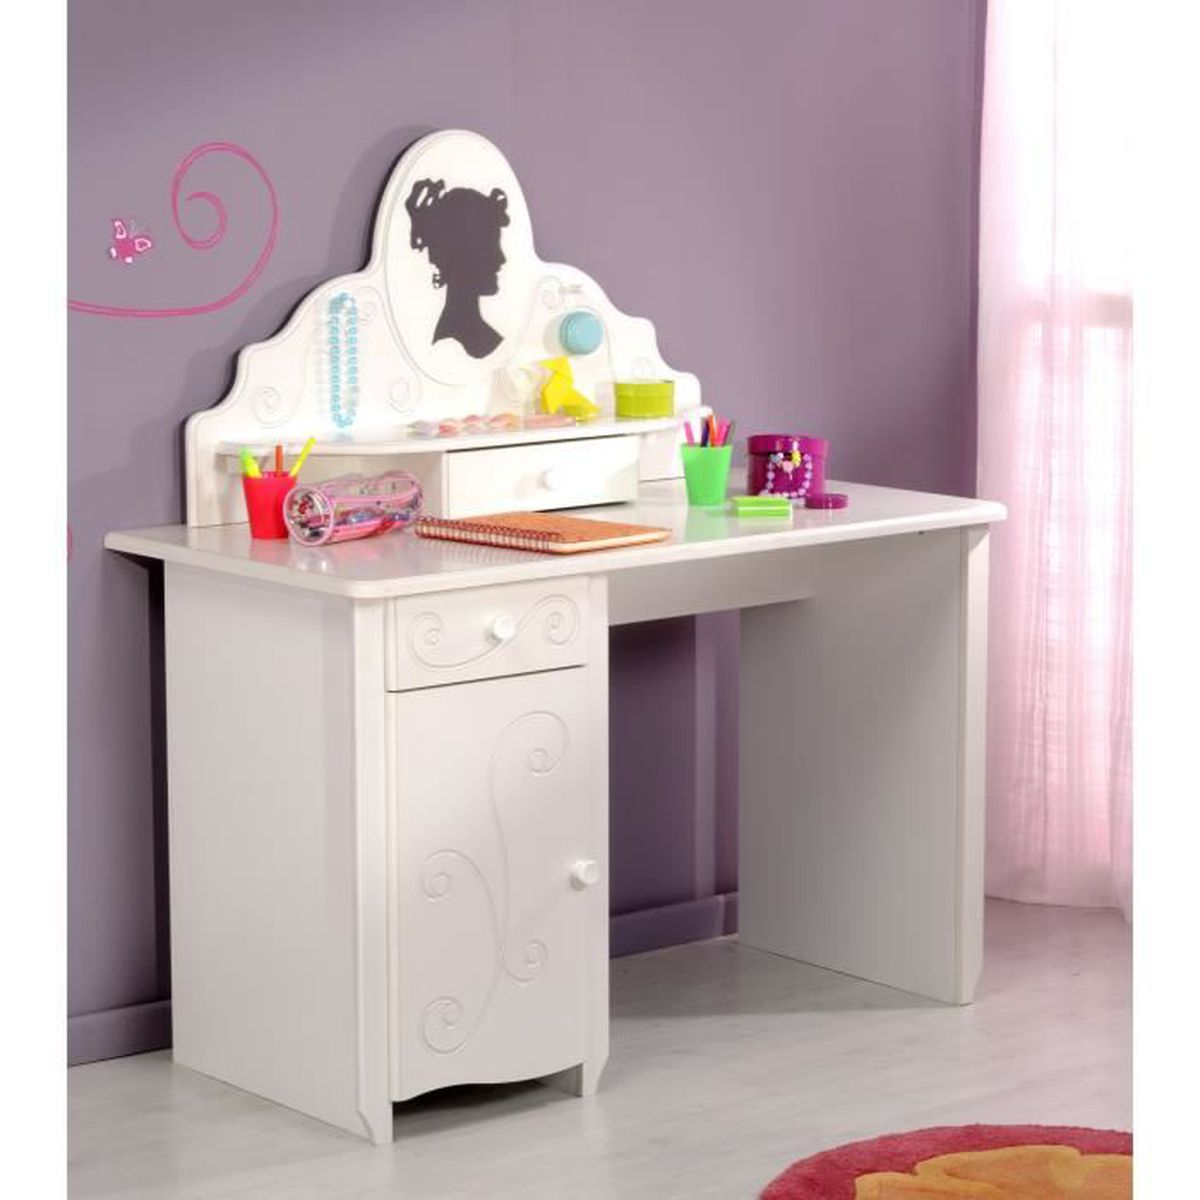 Beau Model De Bureau Secretaire #3: Charmant Model De Bureau Secretaire #1: Best 25+ Bureau Rabattable Ideas On  Pinterest | Bureau Mural Rabattable, Table Rabattable And Table En  Contreplaqué